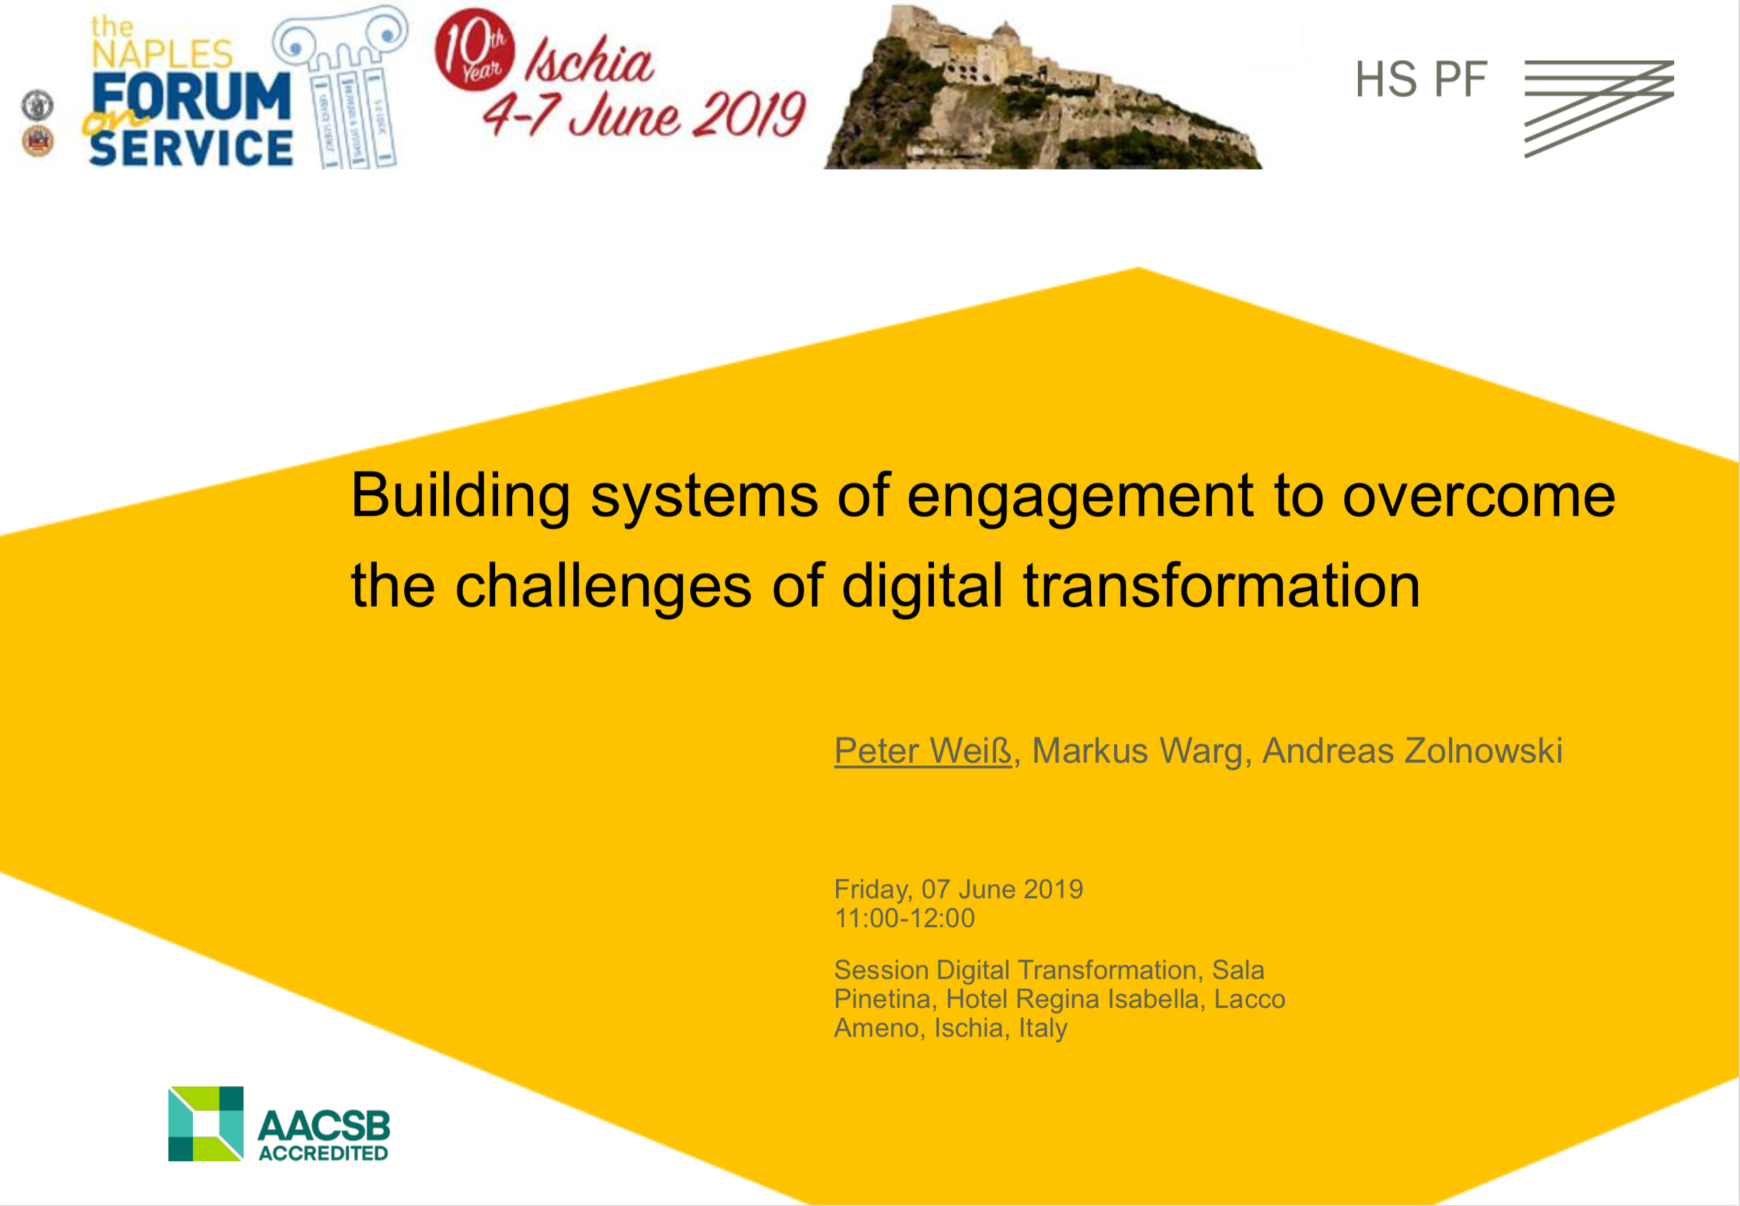 Naples 2019 Building Systems of Engagement